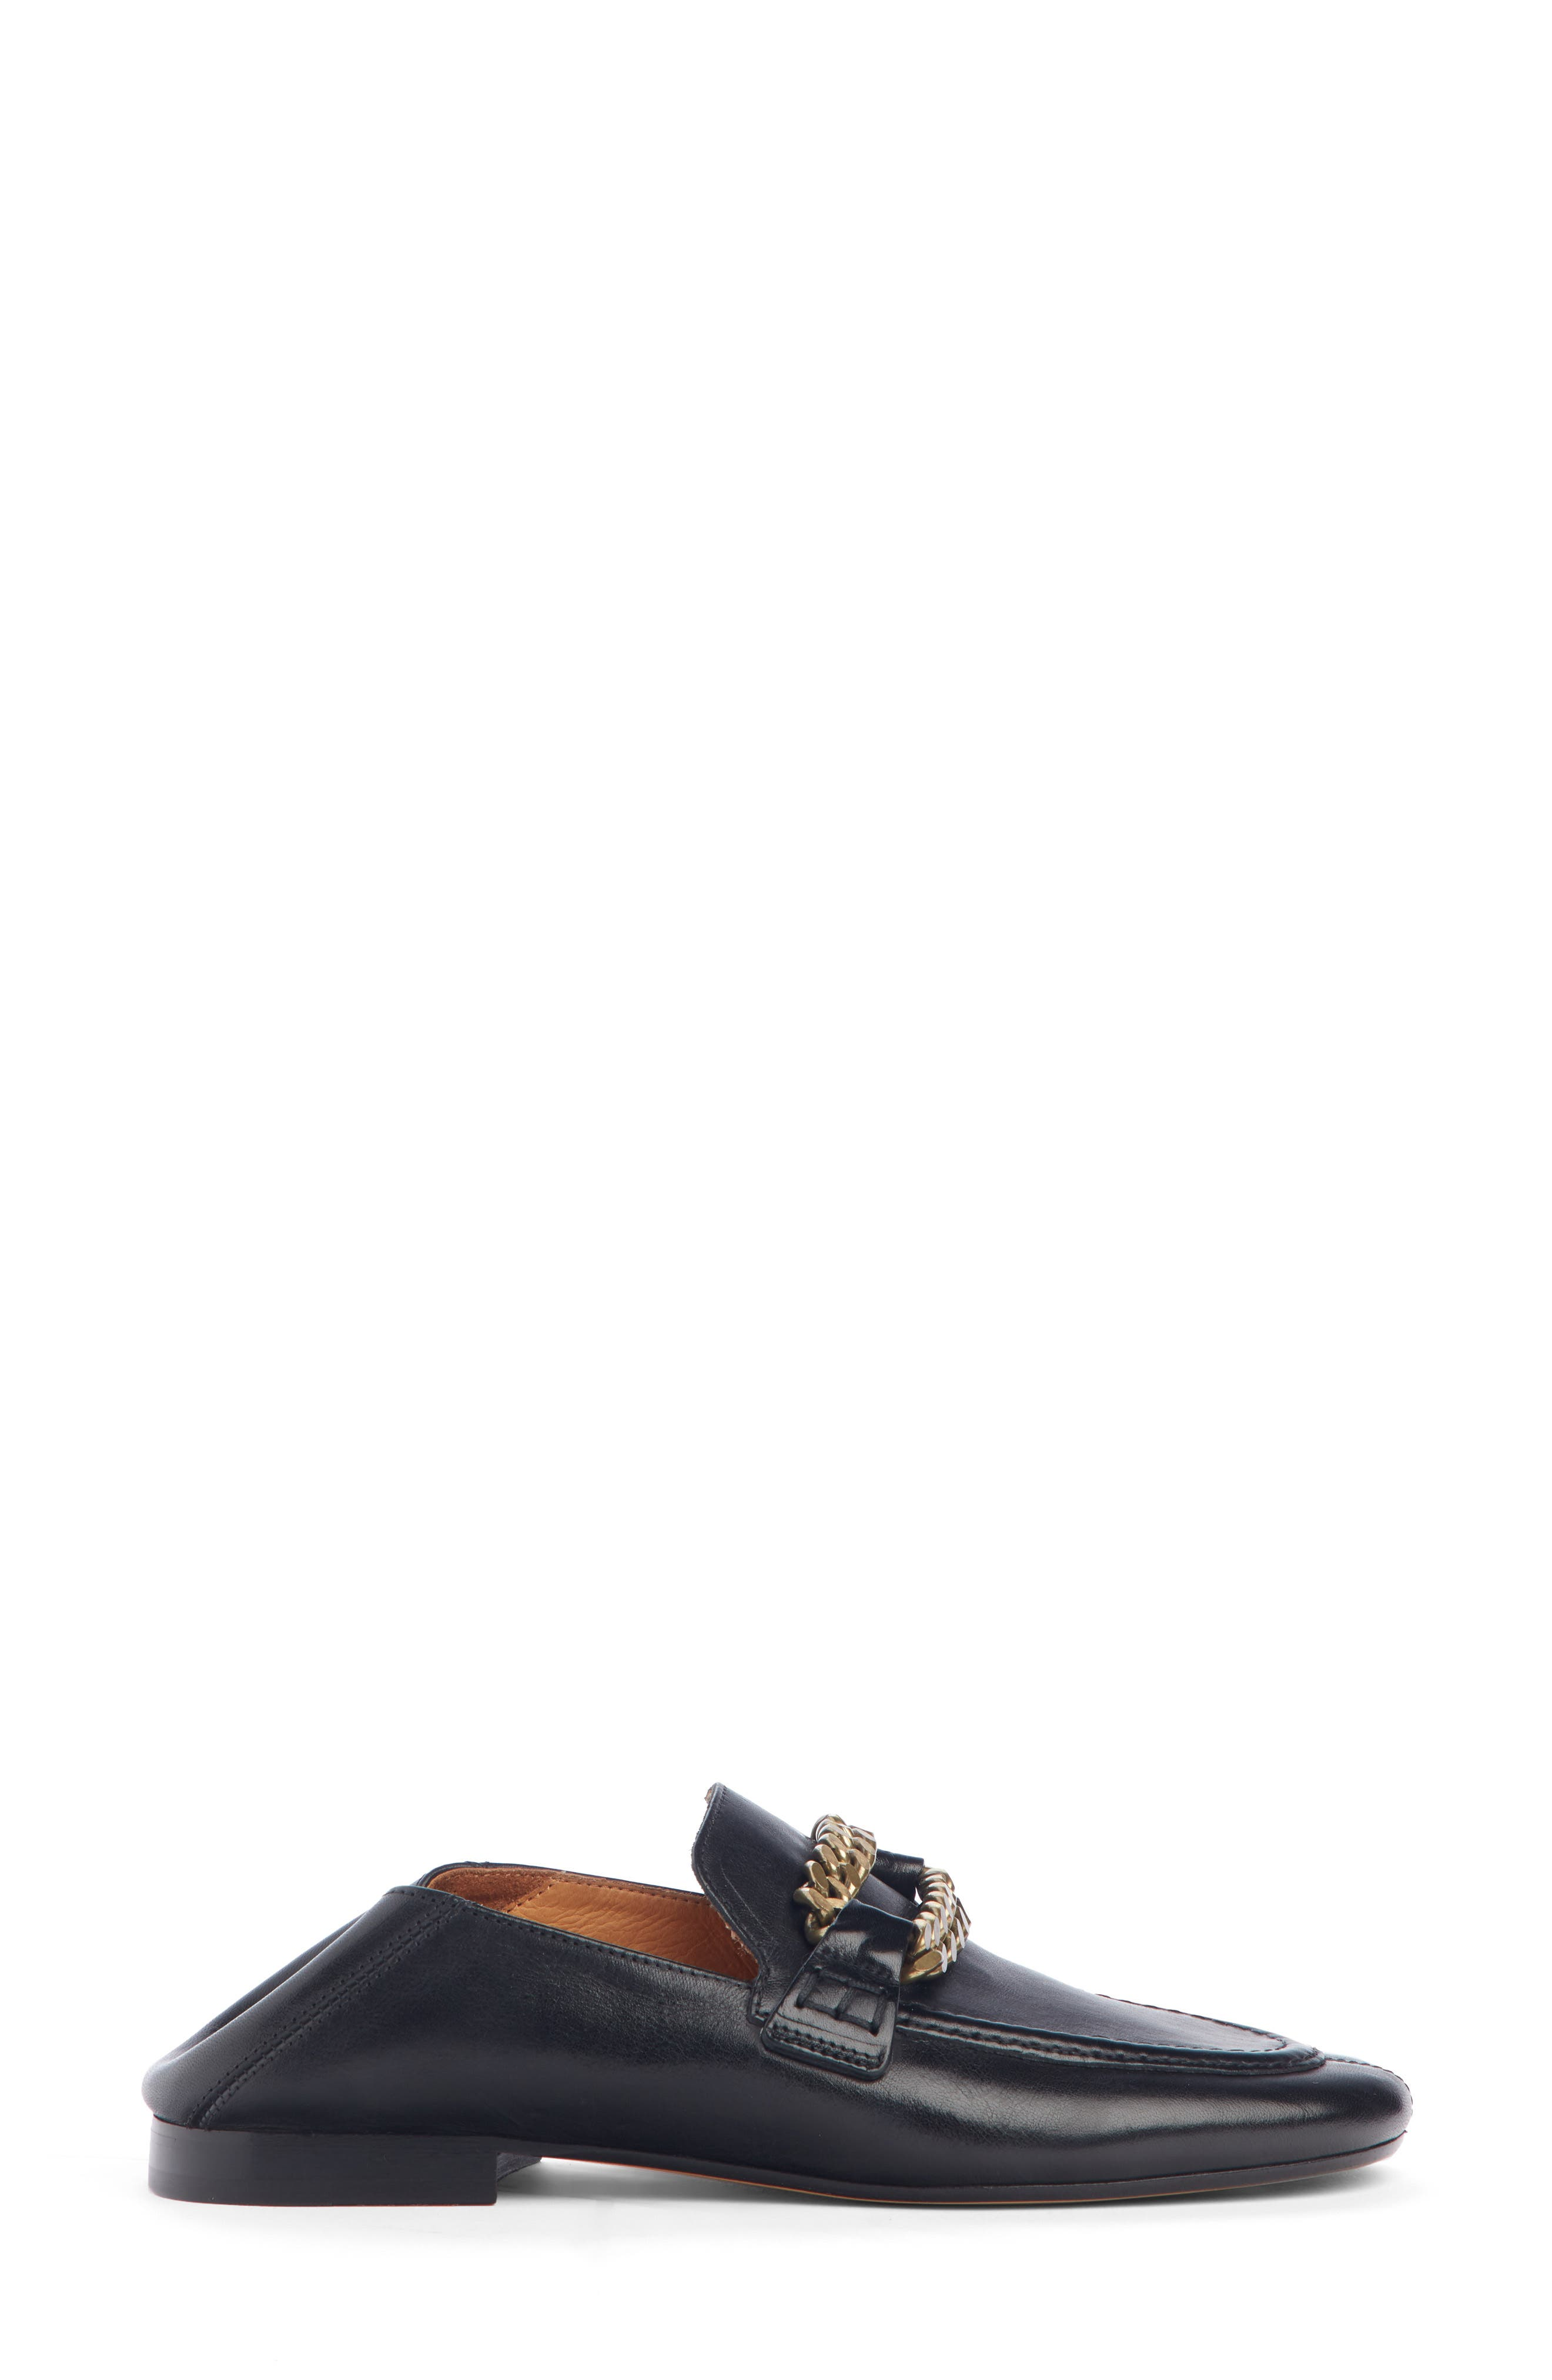 ISABEL MARANT,                             Firlee Chain Convertible Loafer,                             Alternate thumbnail 4, color,                             BLACK